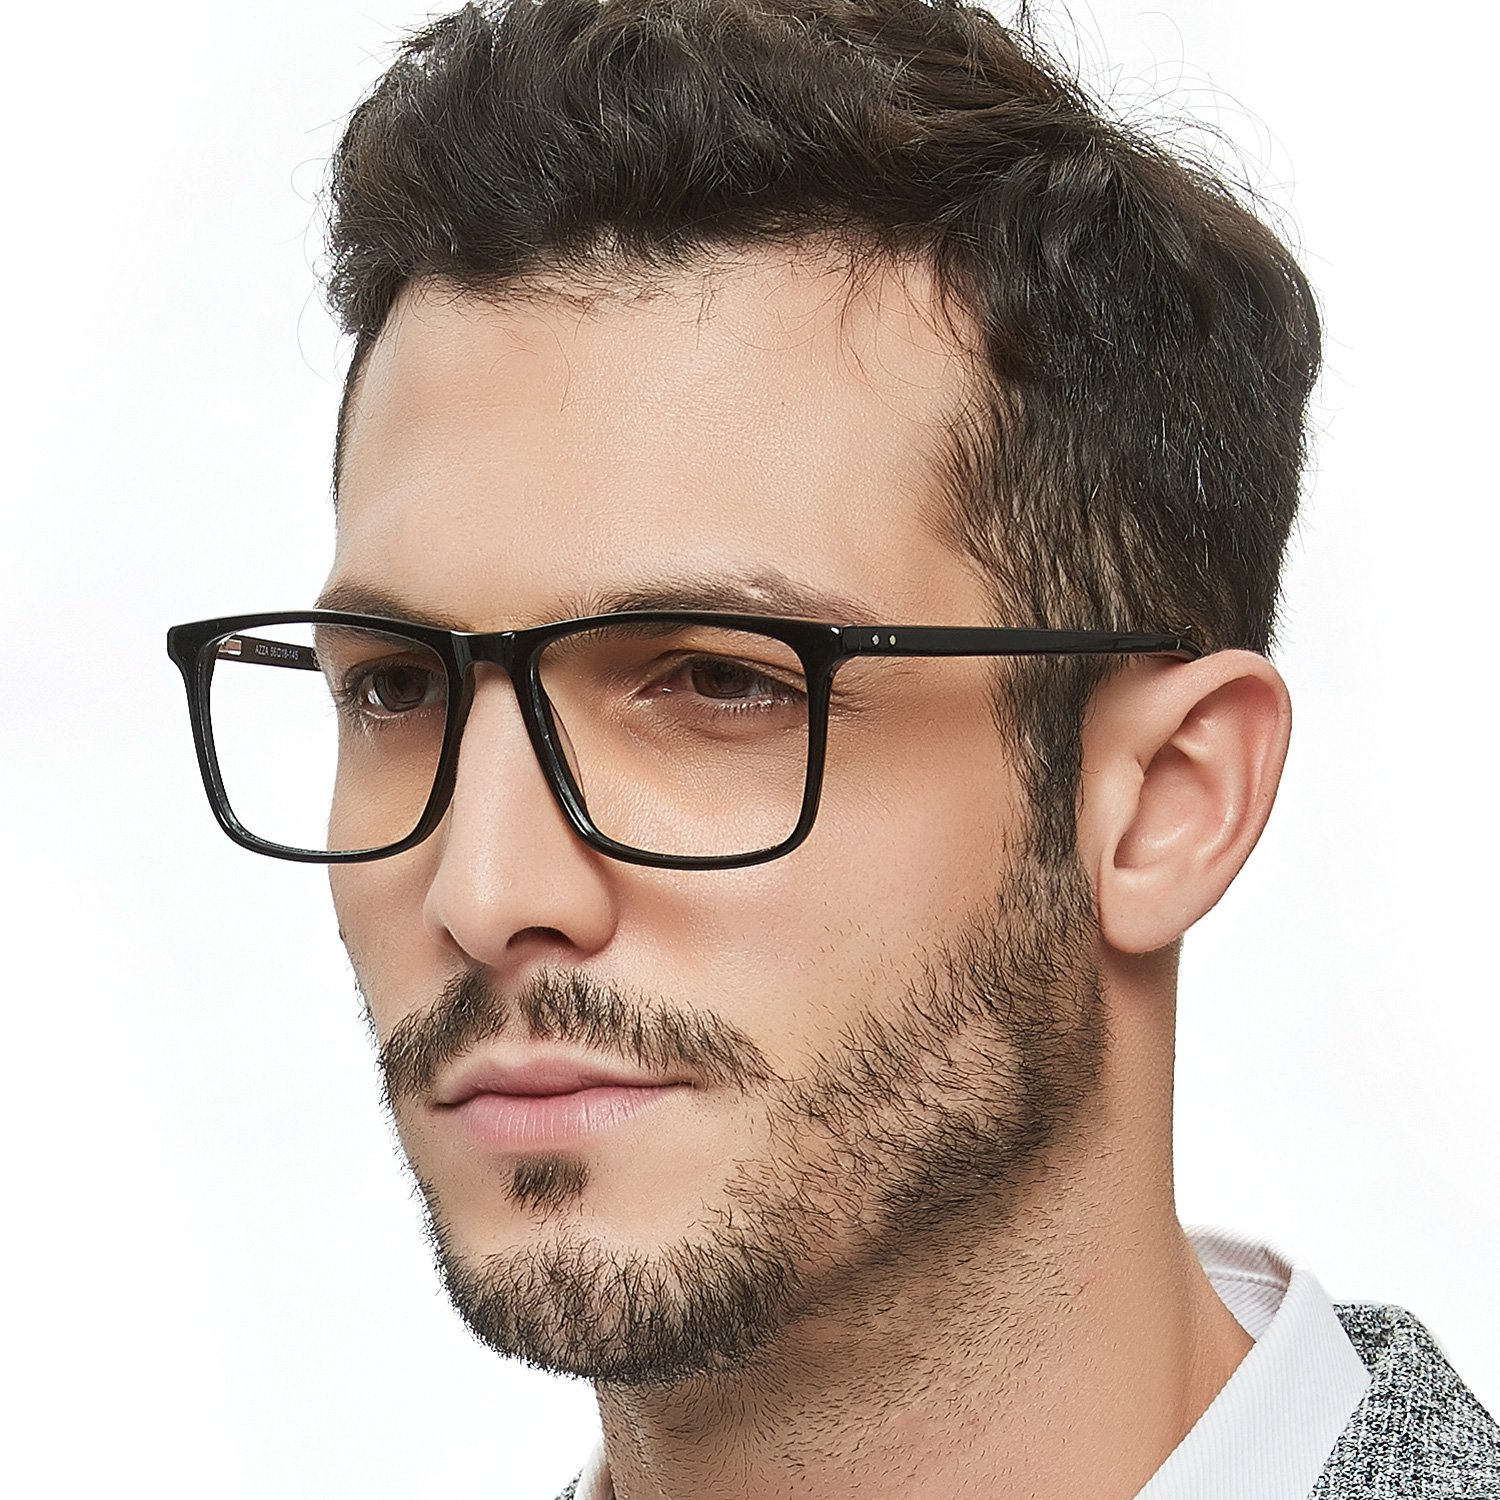 OCCI CHIARI Optical Men's Eyewear Classic Non-prescription Eyeglasses Frame